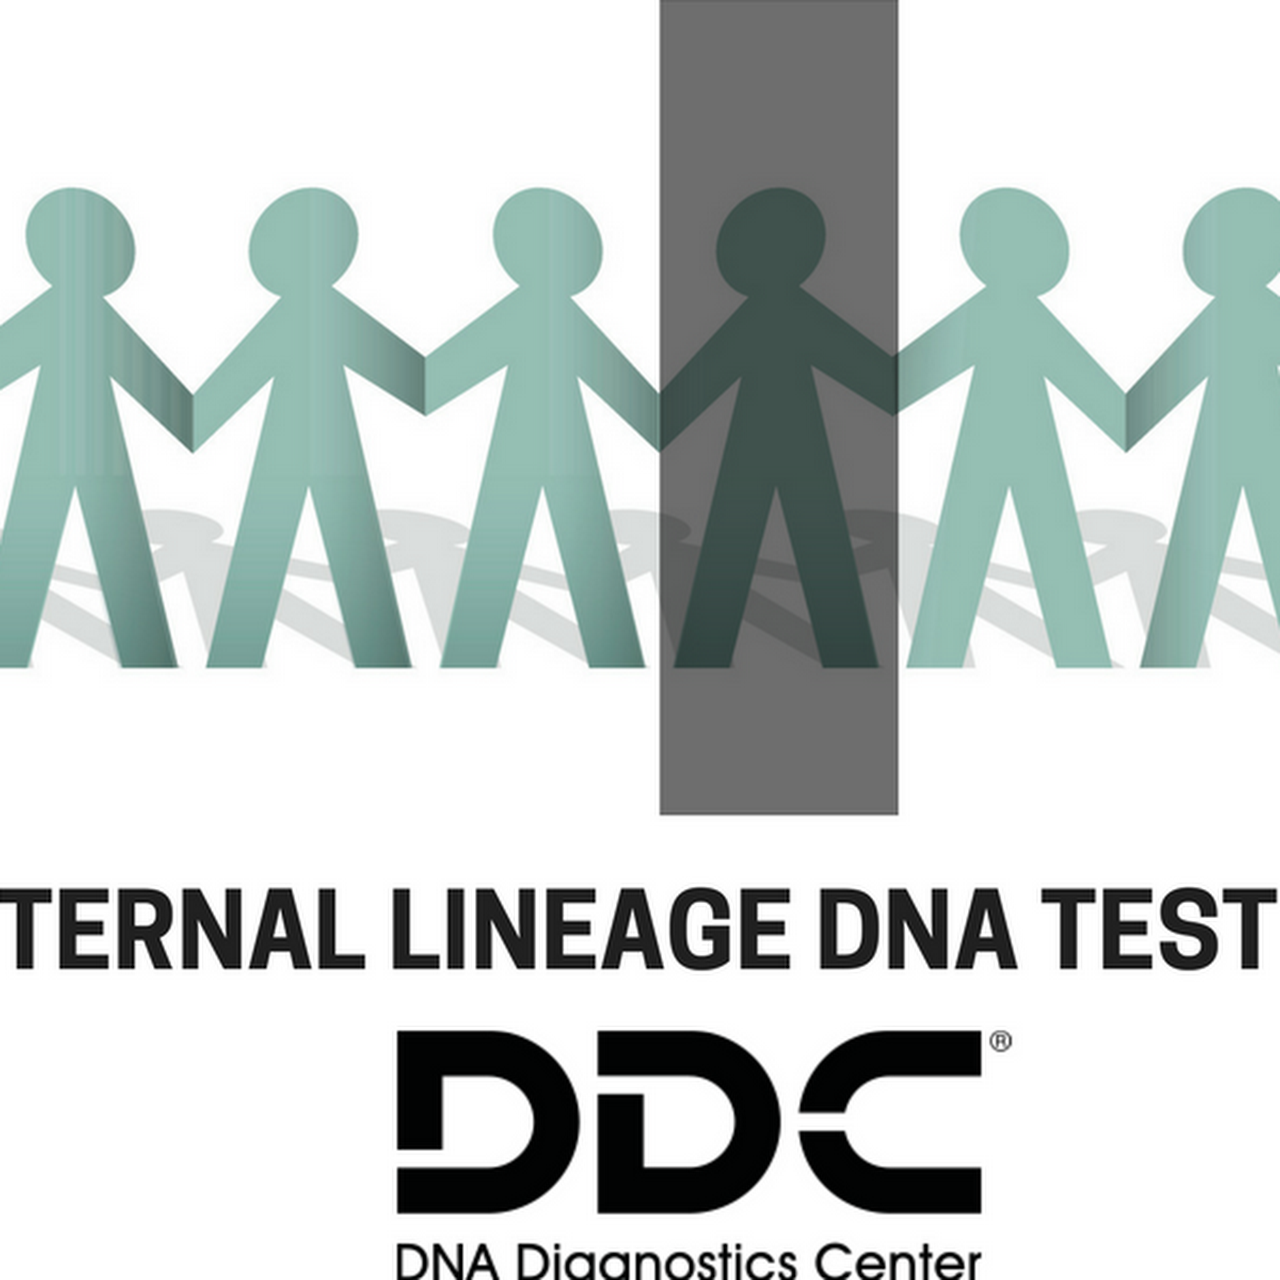 DDC DNA DIAGNOSTICS CENTRE UGANDA - Mental Health Clinic in